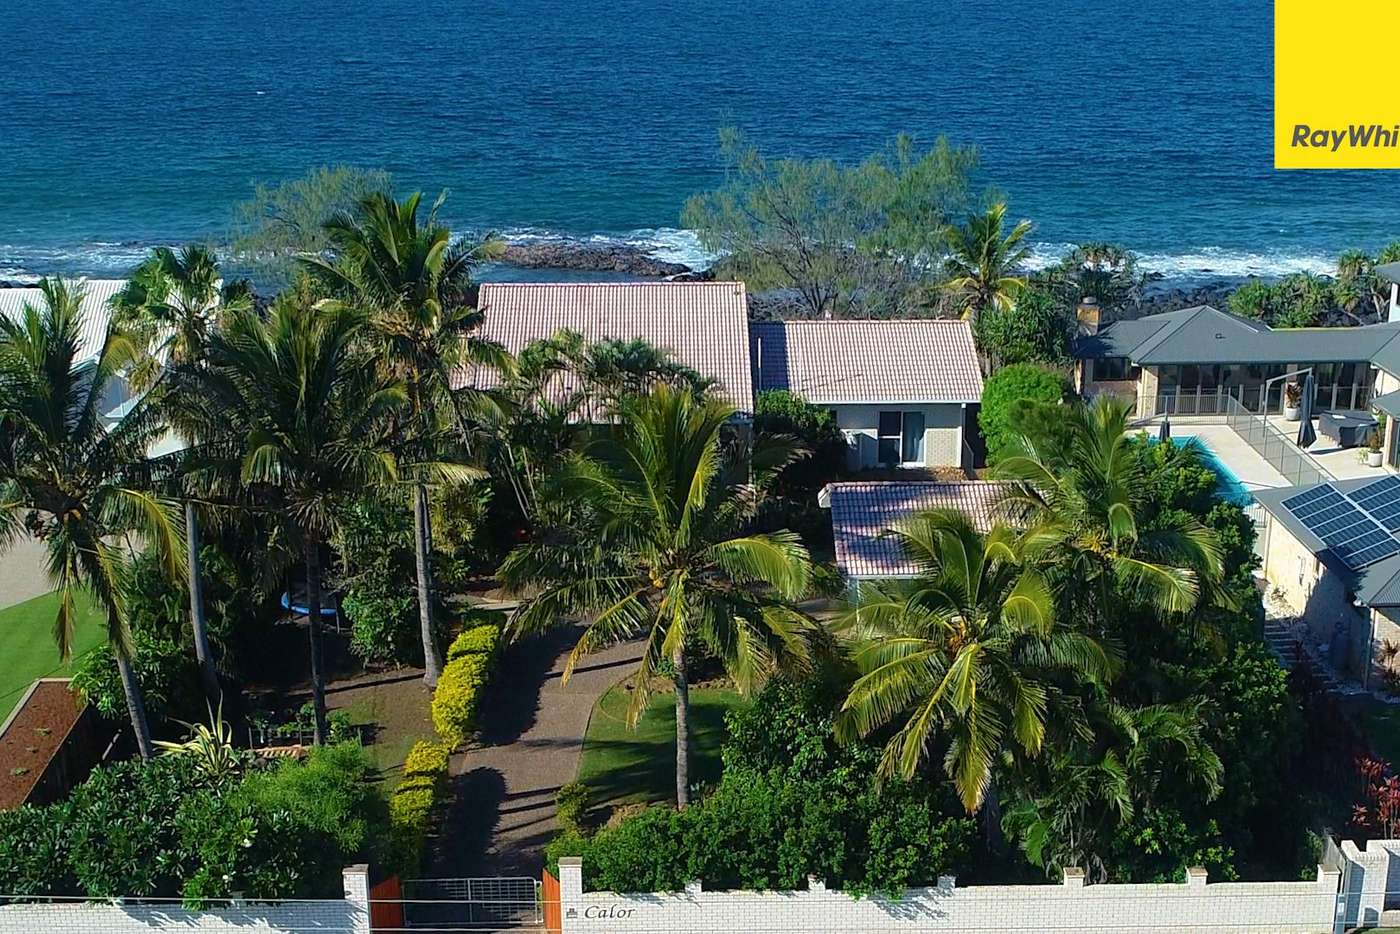 Main view of Homely house listing, 48 Barolin Esplanade, Coral Cove QLD 4670